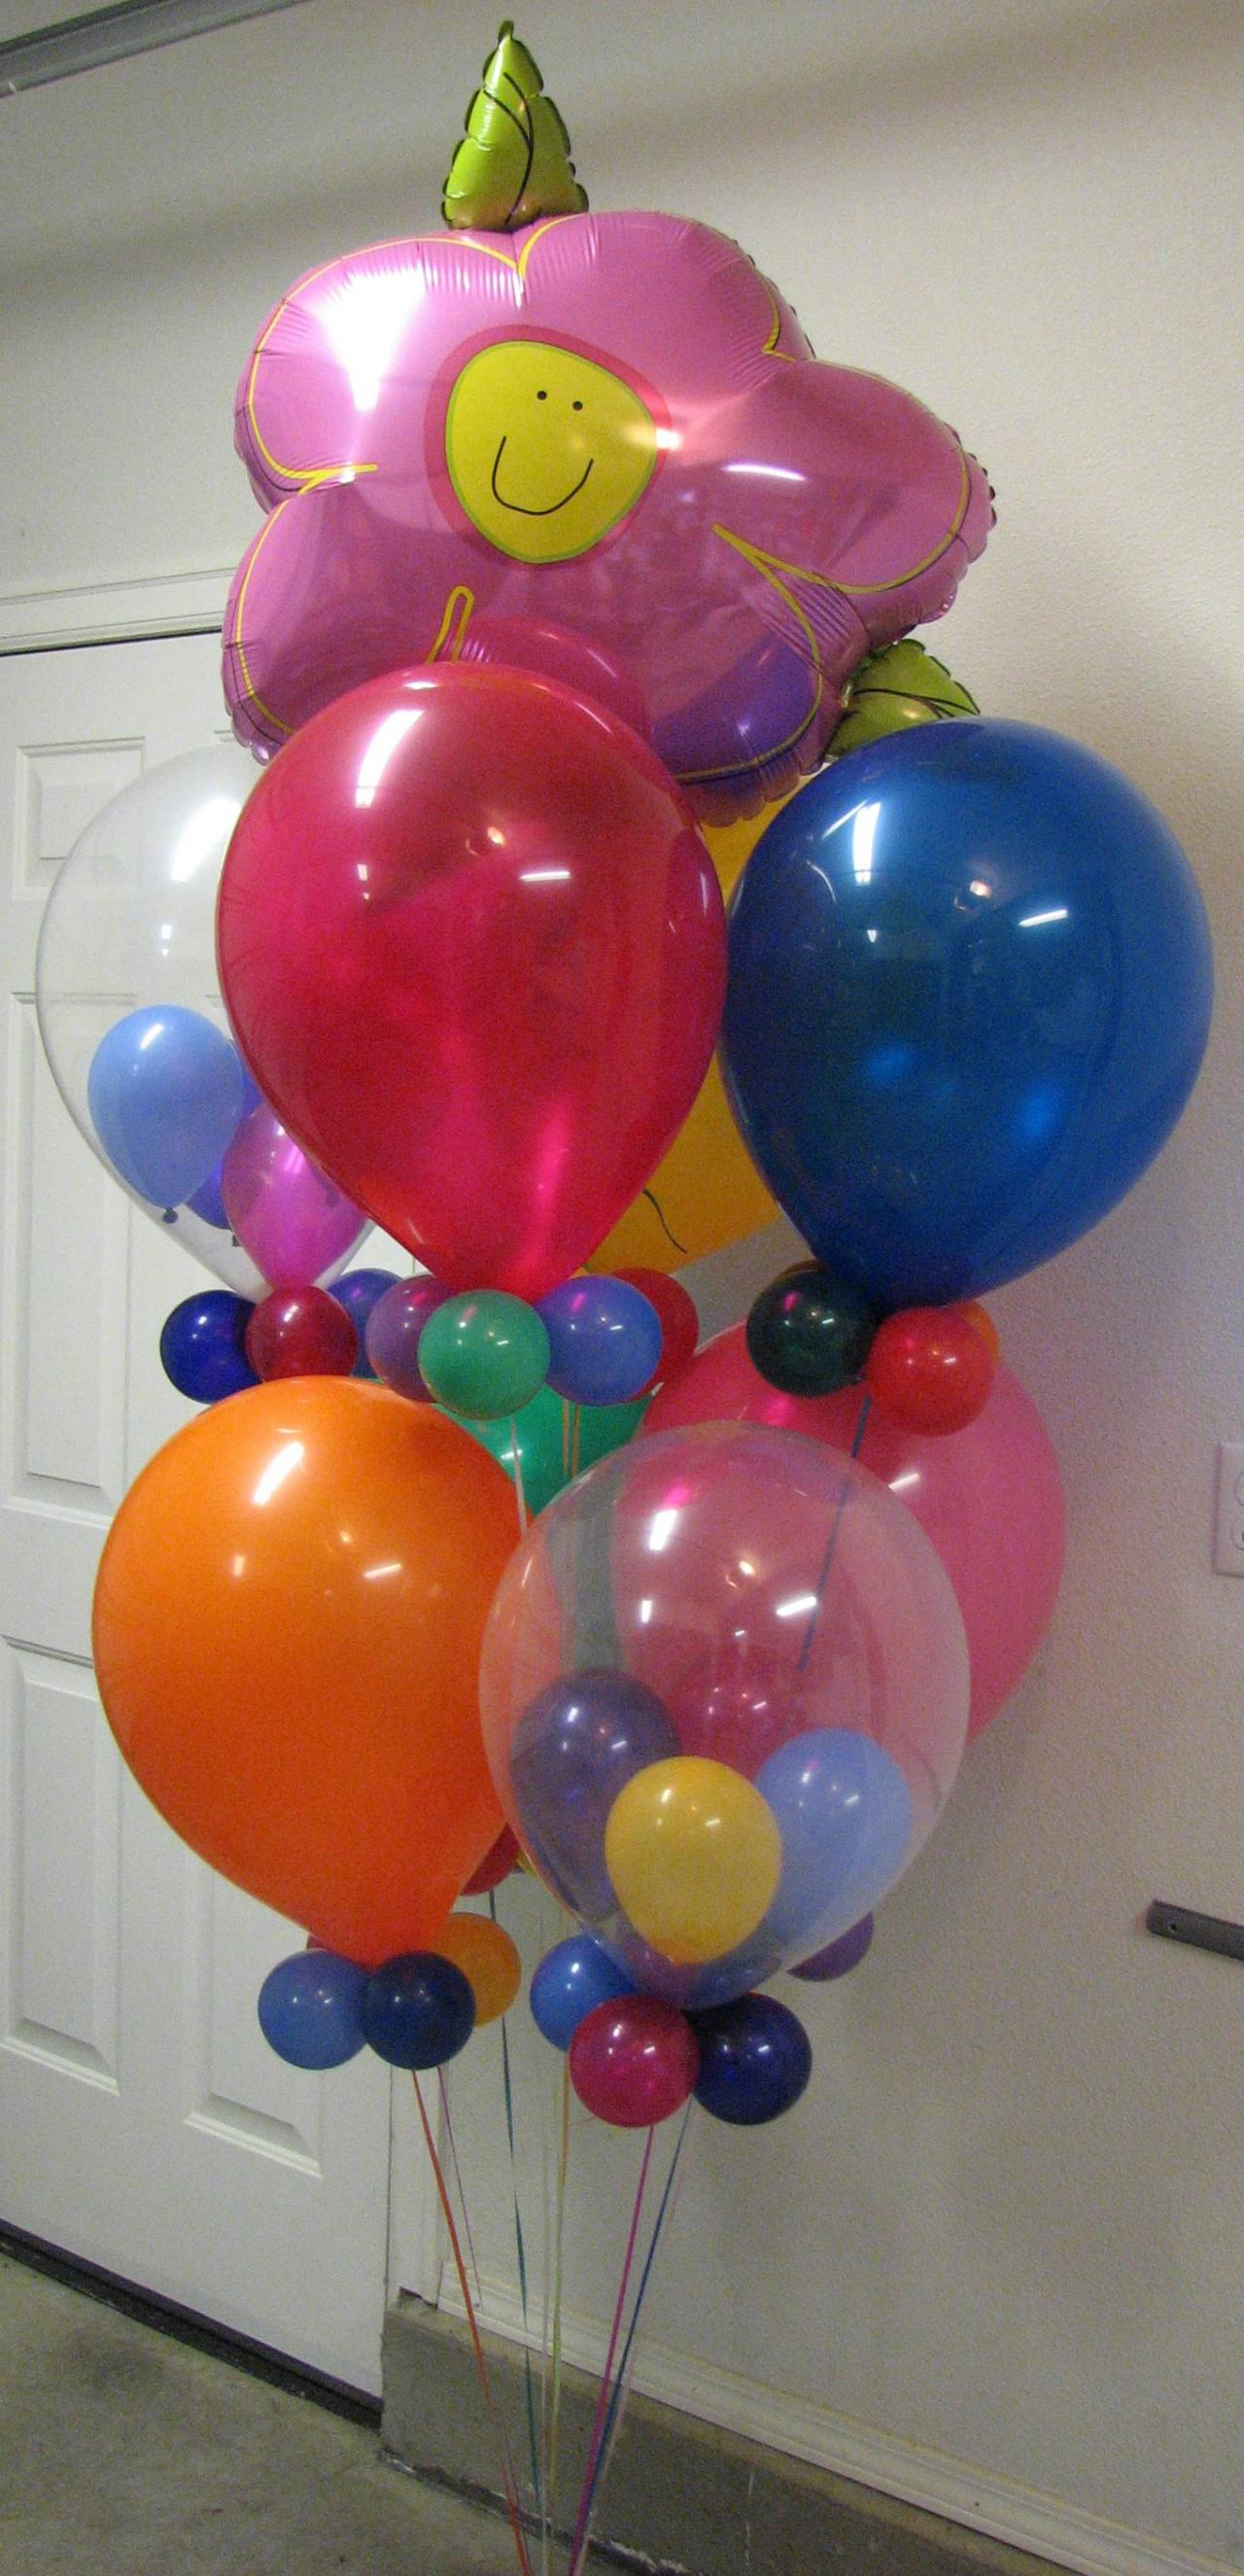 Balloon bouquet delivery balloon decorating 866 340 - Send A Balloon Delivery And Bouquets Balloons Balloon Deliveries Done In Portland